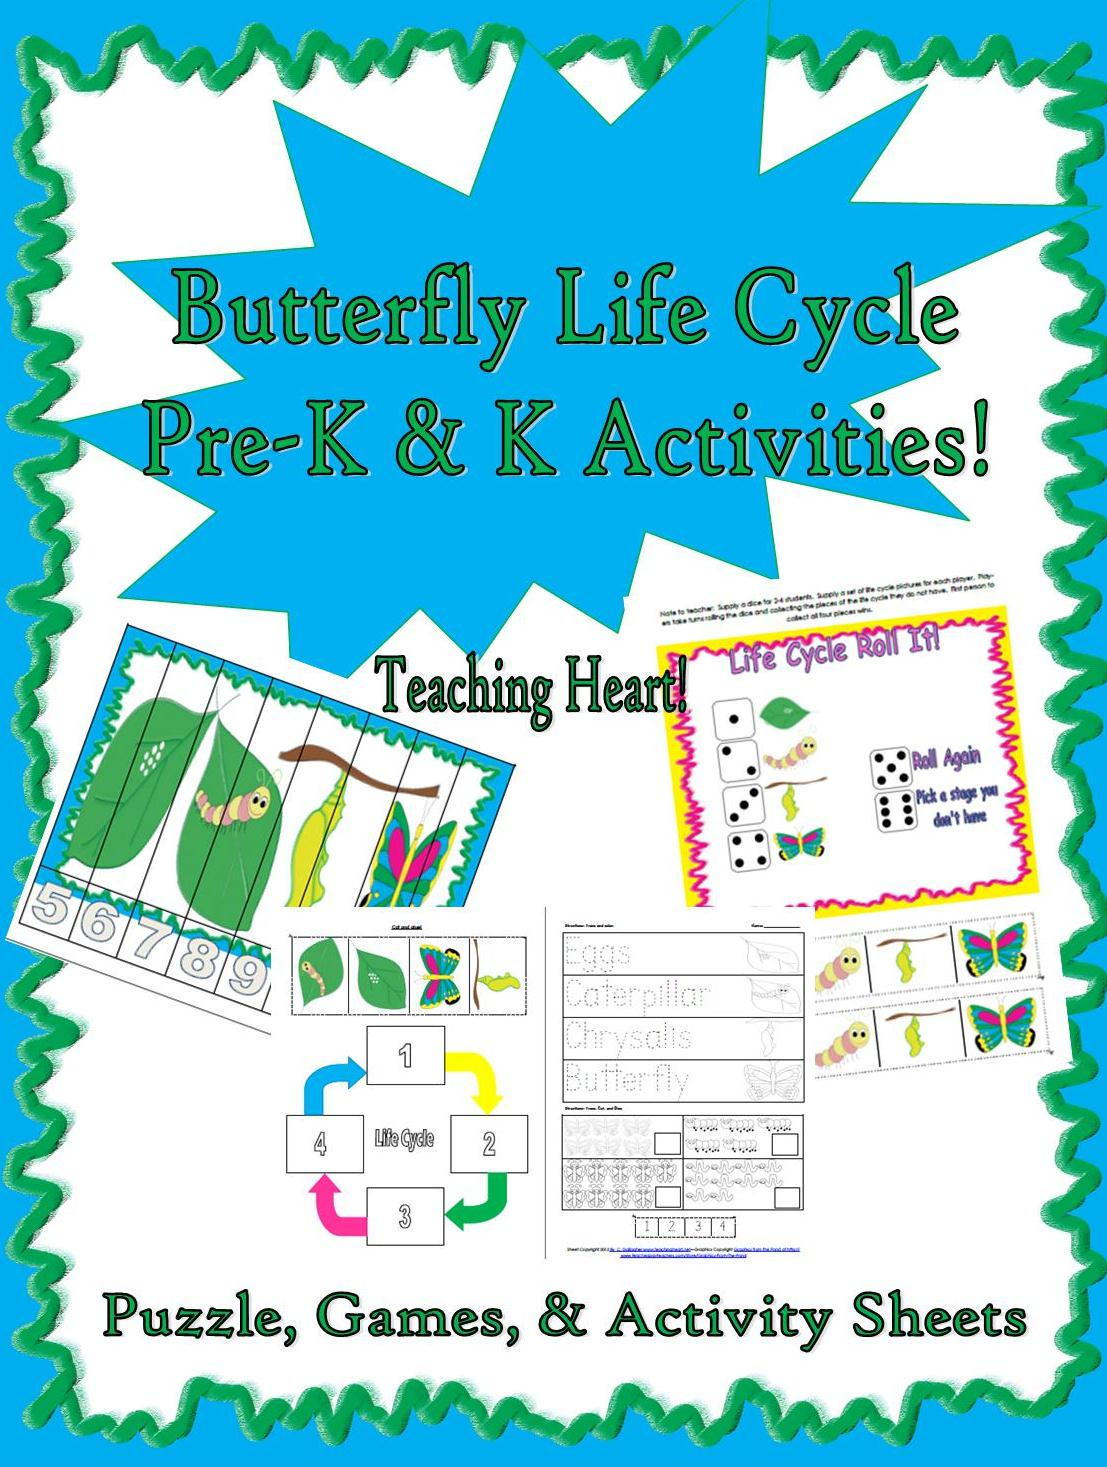 Free sle below from the preschool butterfly life cycle packet